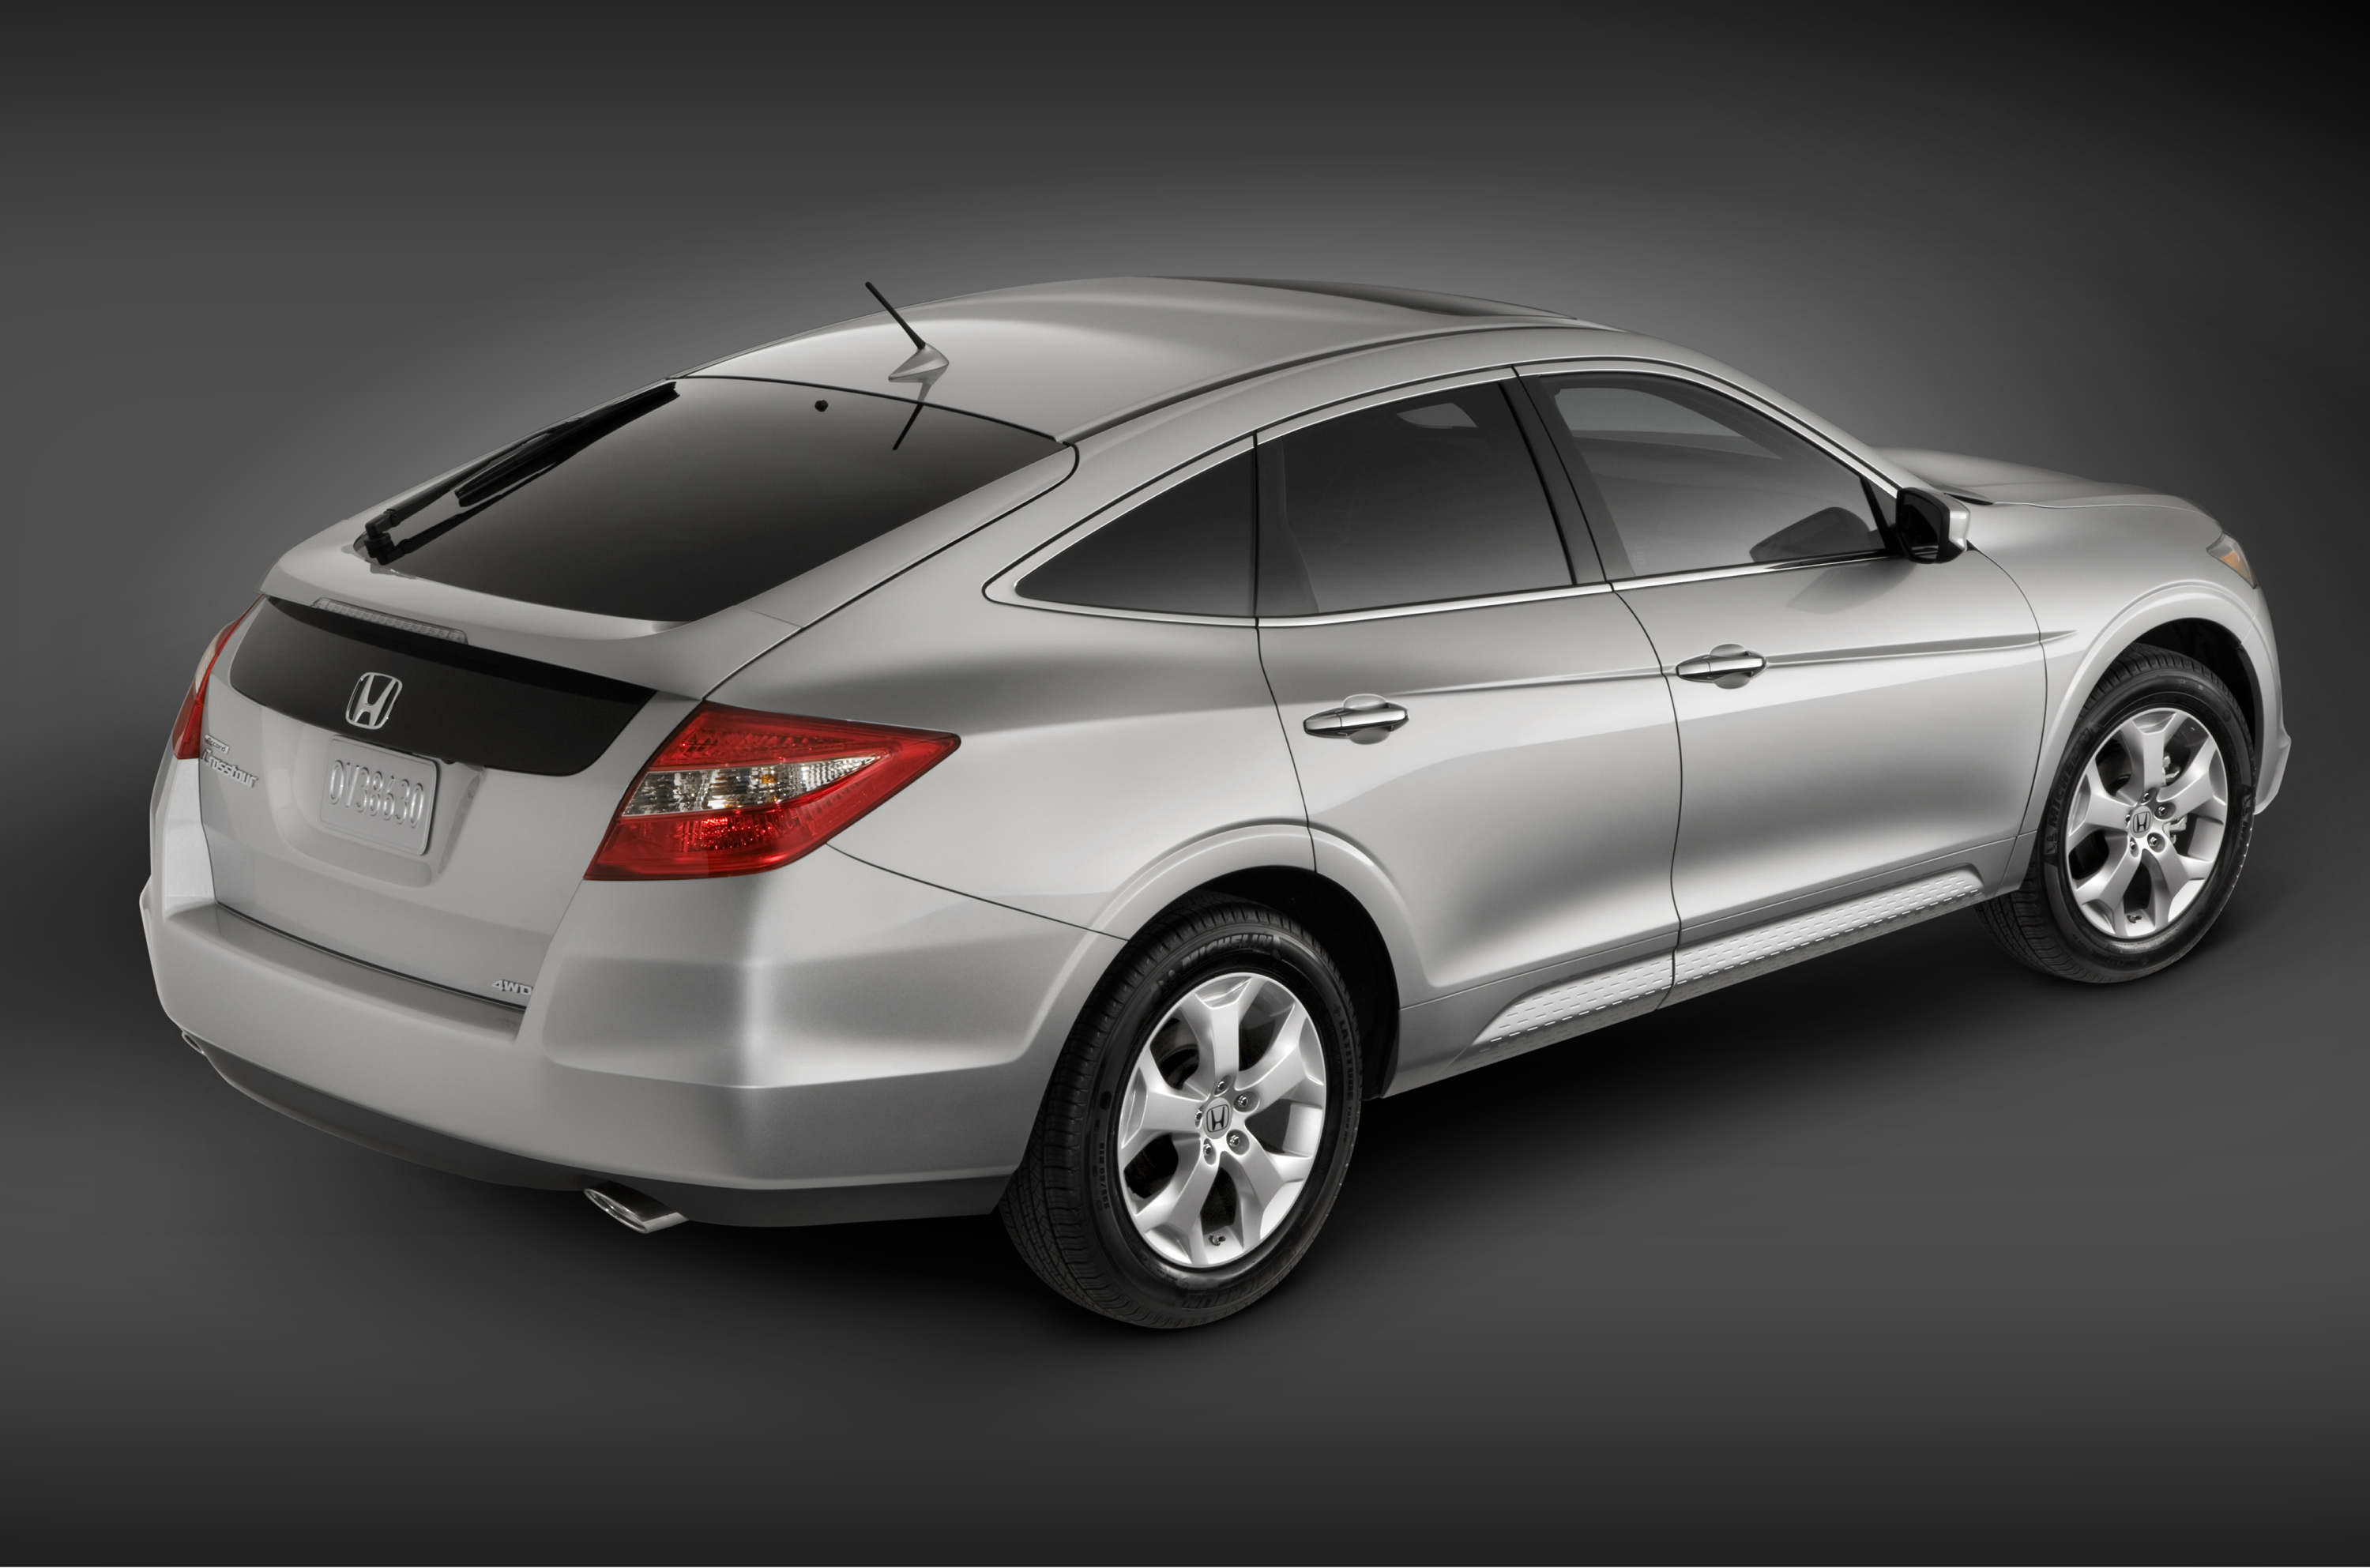 Honda Accord Crosstour 2010 Cartype